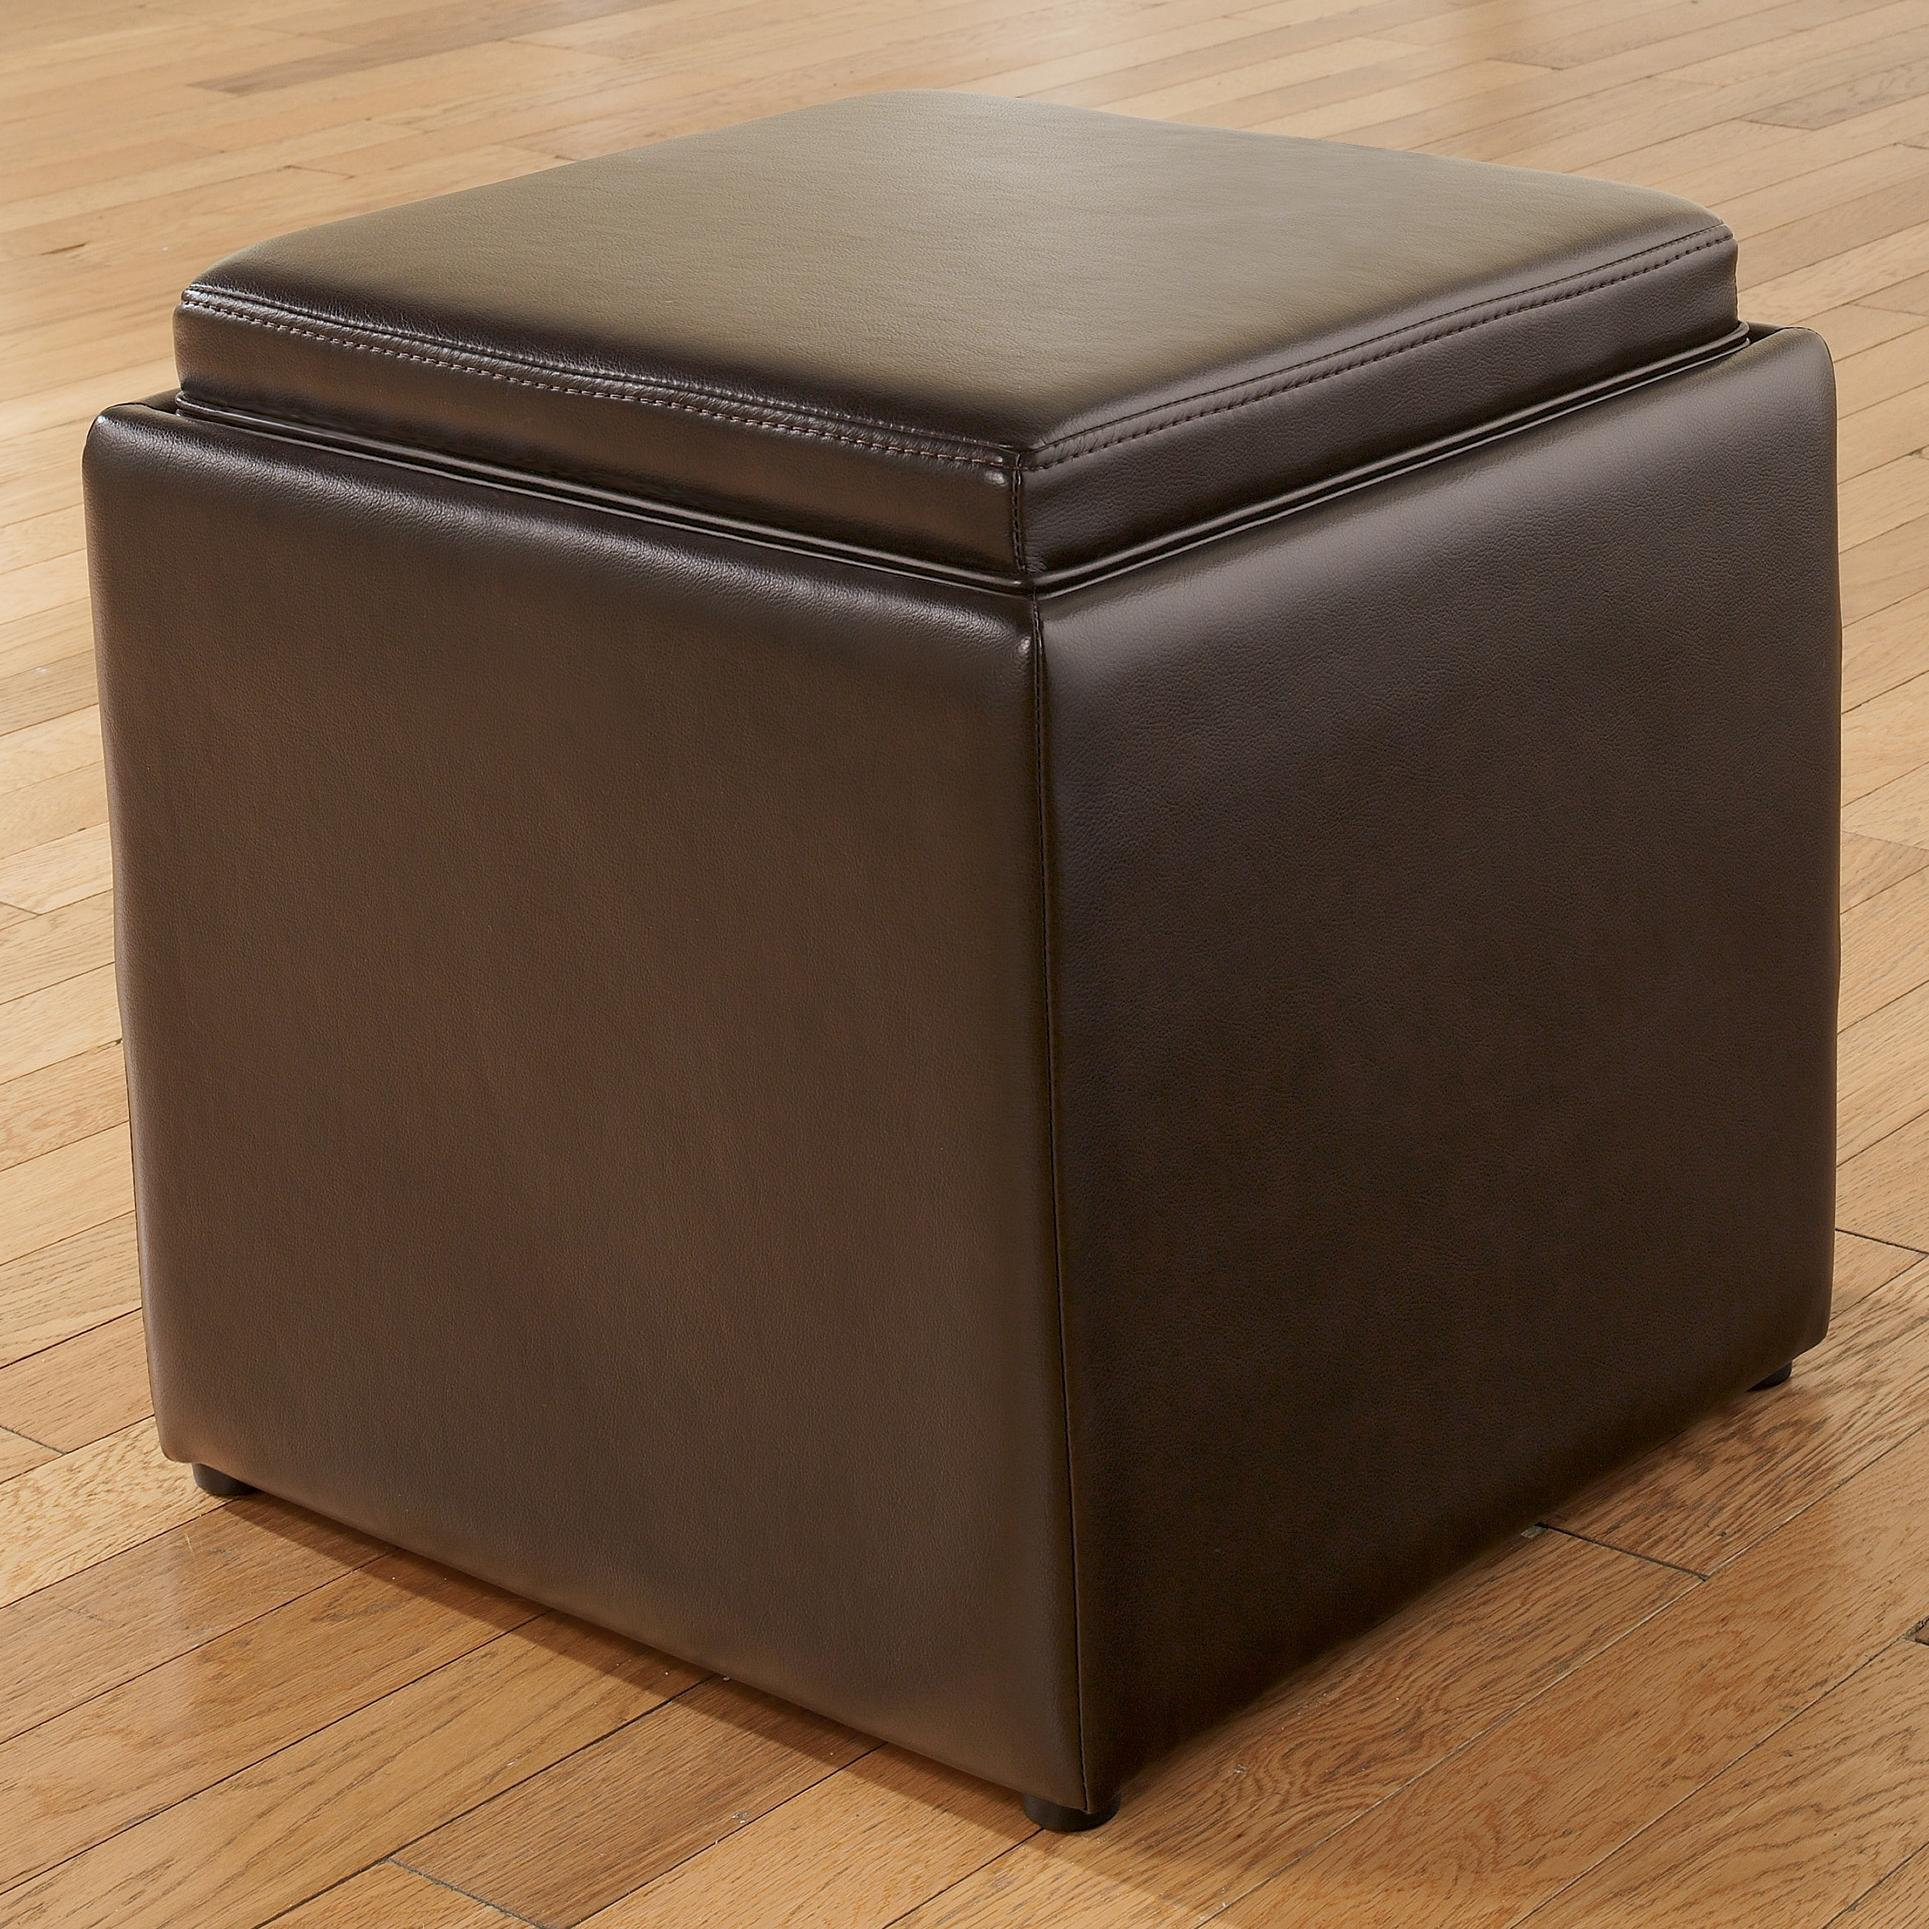 Signature Design by Ashley Cubit - Chocolate Ottoman with Storage - Item Number: 7740211